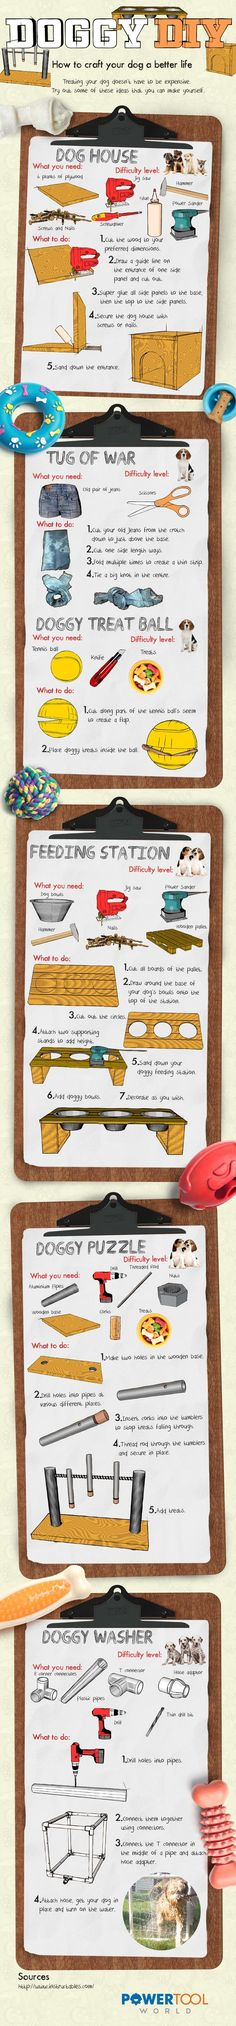 Dog #DIY projects to keep you and your dog busy! Easy to make and cost effective.